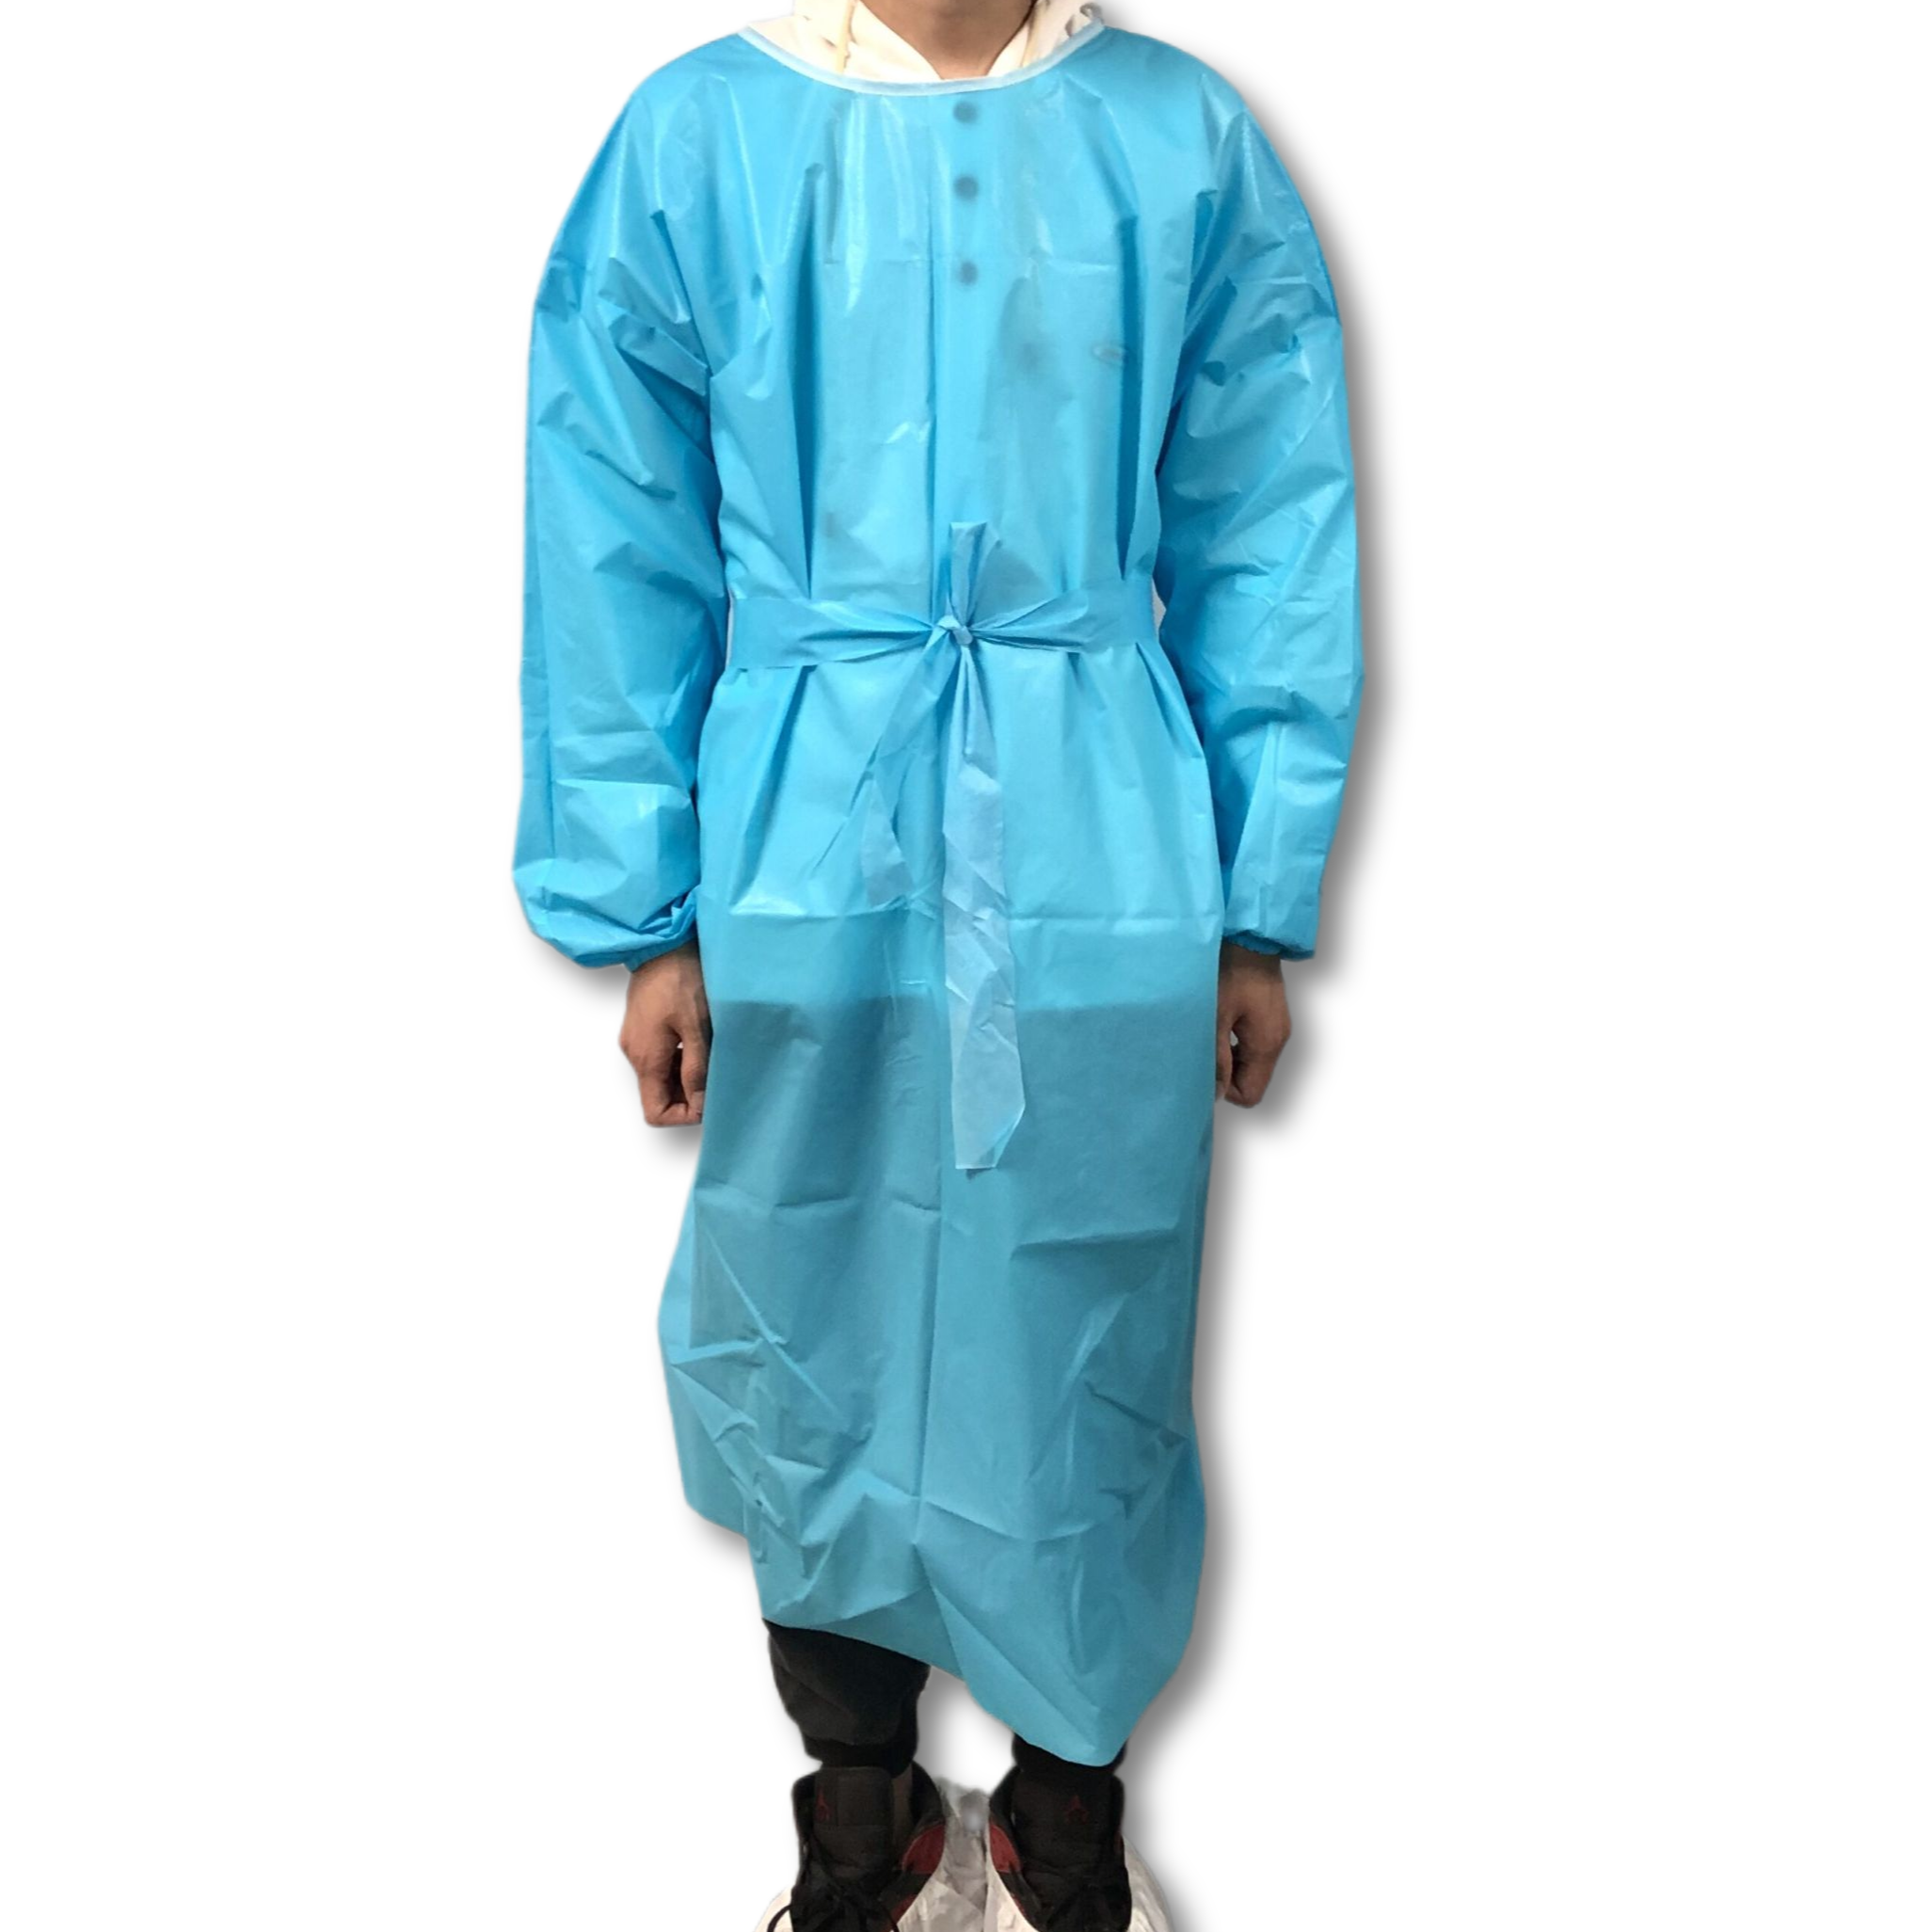 50 pack ppe gown disposable waterproof pe coated pp non woven dustproof waterproof isolation gown - KingCare   KingCare.net